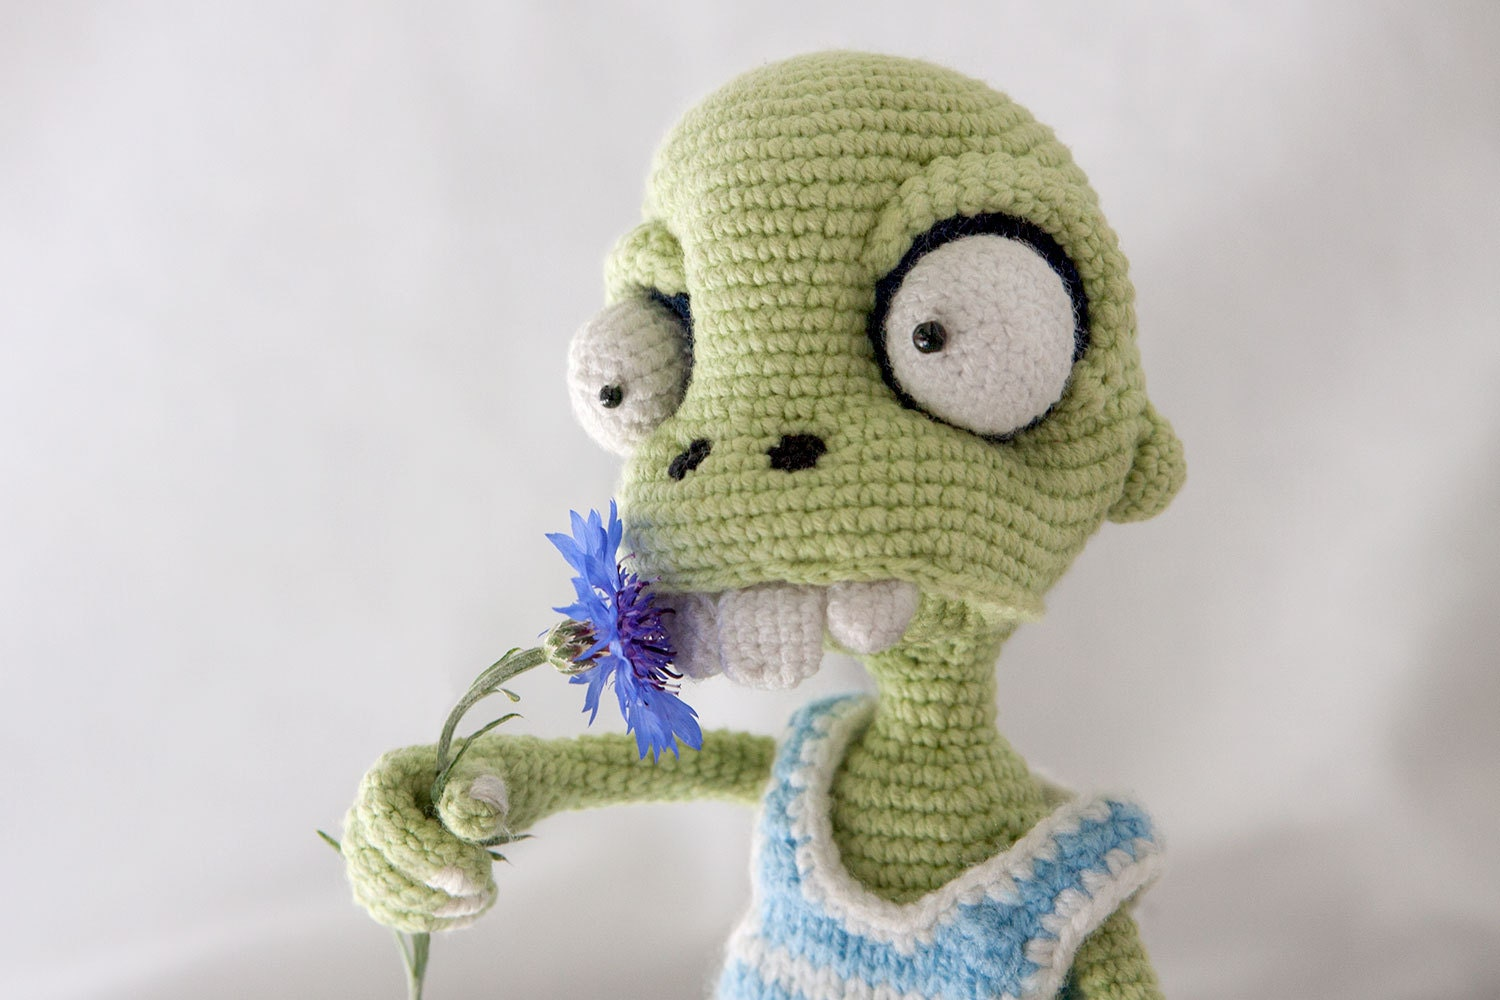 Free Crochet Patterns Zombie : PATTERN Zombie boy crochet pattern amigurumi pattern pdf